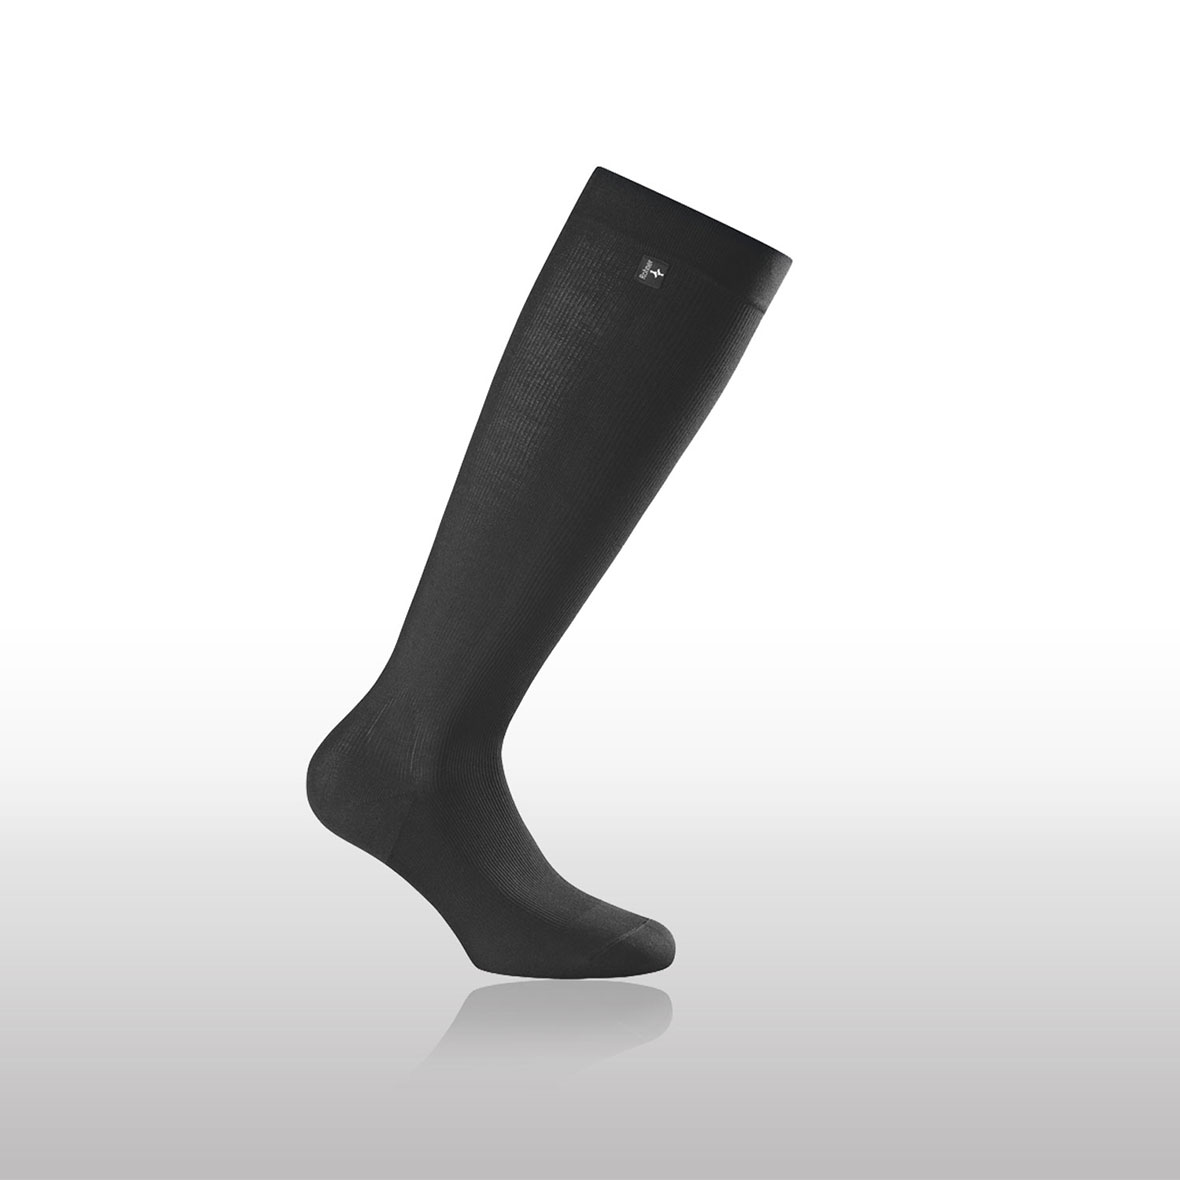 Kompressionssocke Everyday, Rohner Socken, schwarz